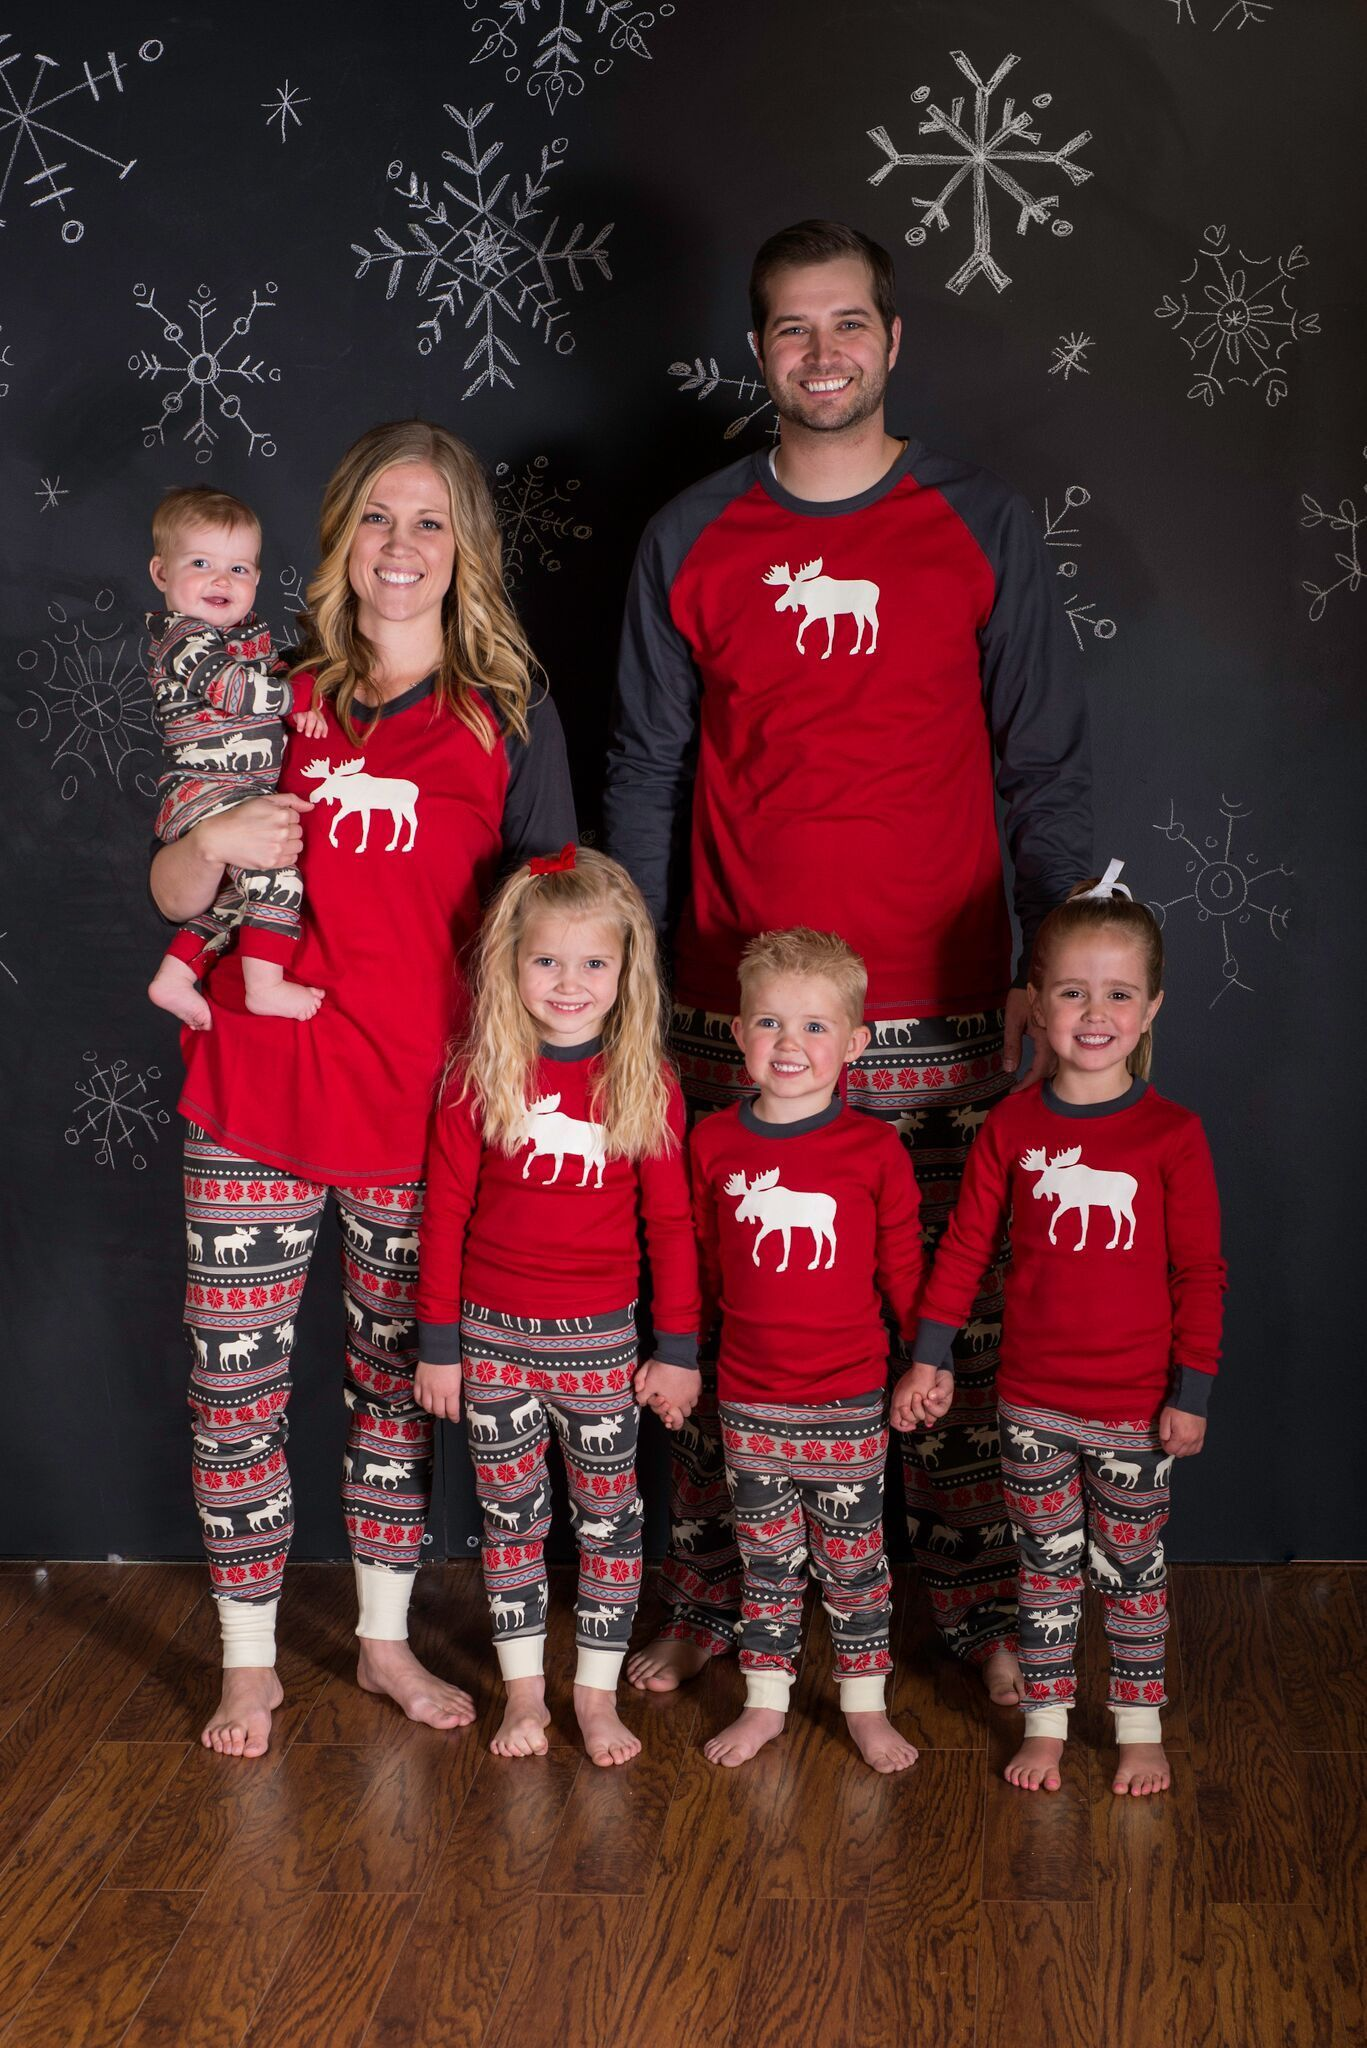 Moose Fair PJ s for the whole Family!  3.39 - 2017 Family Matching Christmas  ... 1eb301380